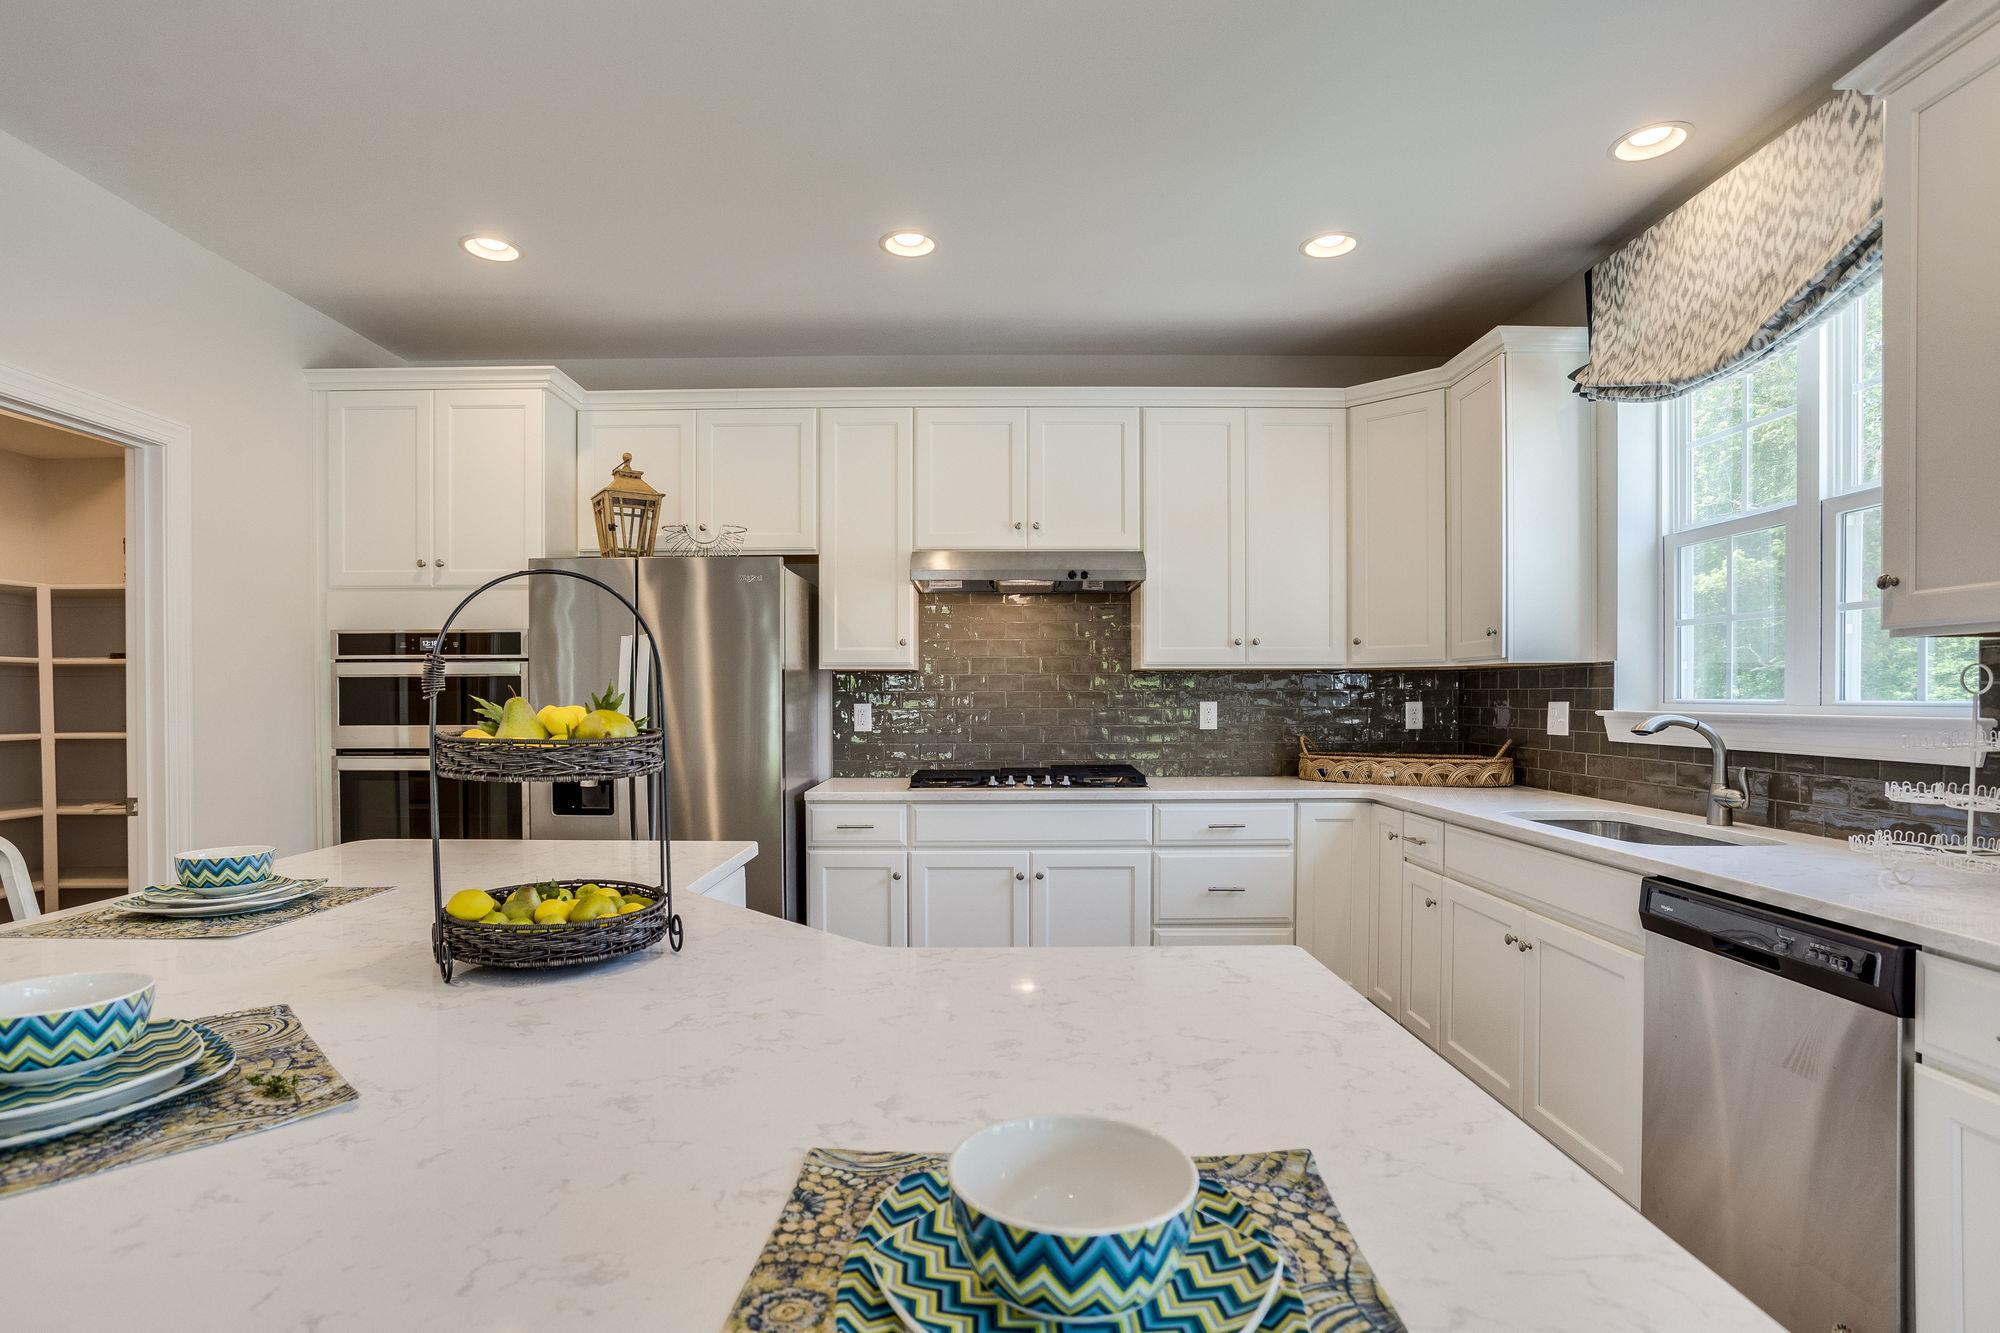 Kitchen featured in the Tidewater By Williamsburg Homes LLC in Baltimore, MD